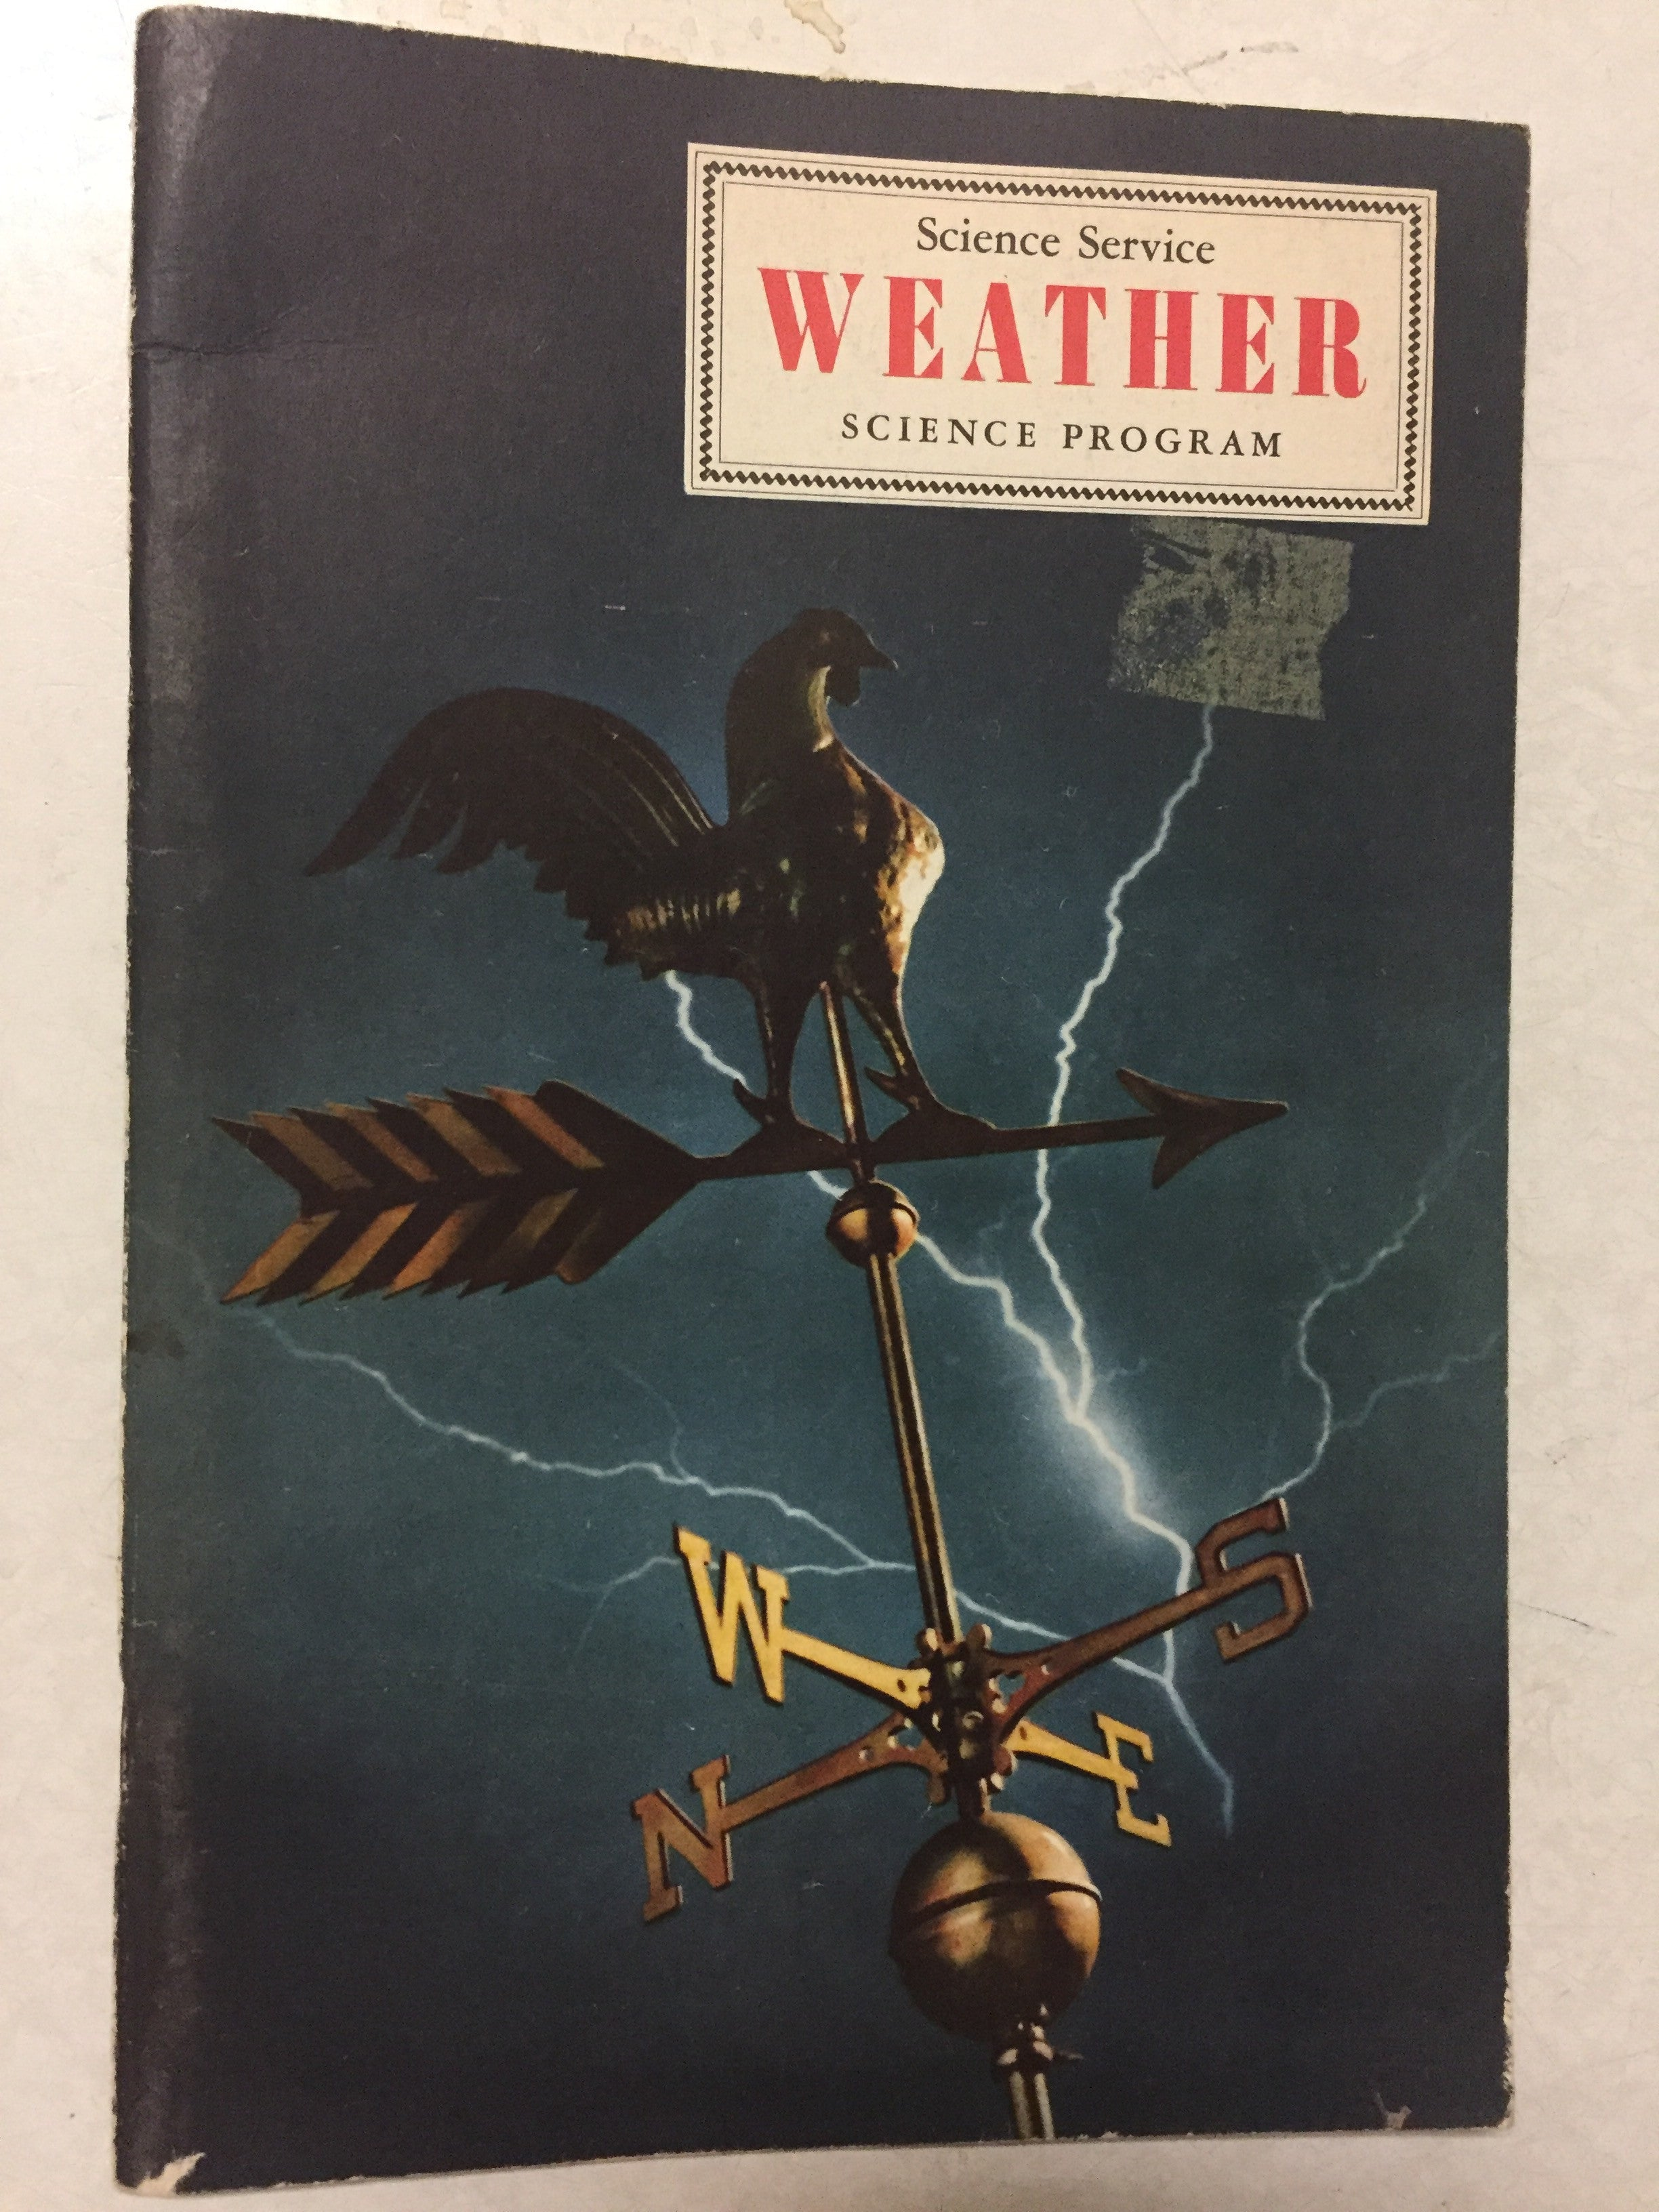 The Nature of the Weather - Slickcatbooks